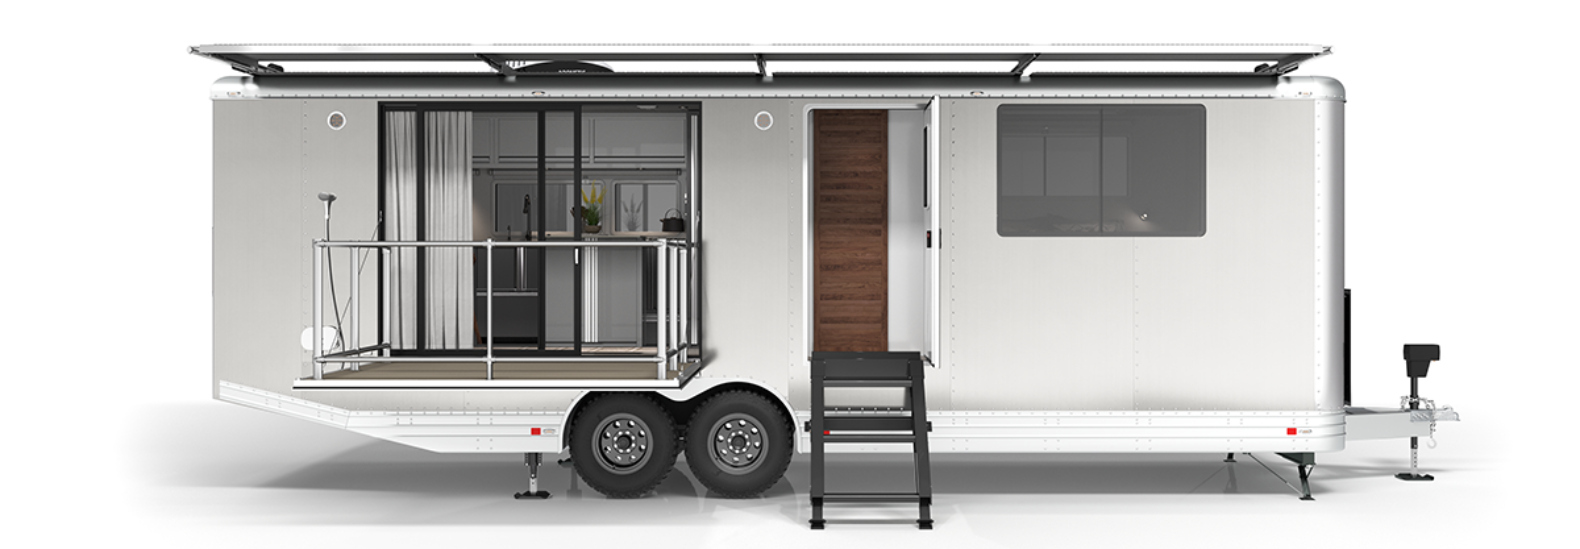 Living Vehicle's 2020 travel trailer generates a whopping 200 percent more solar power than its previous model